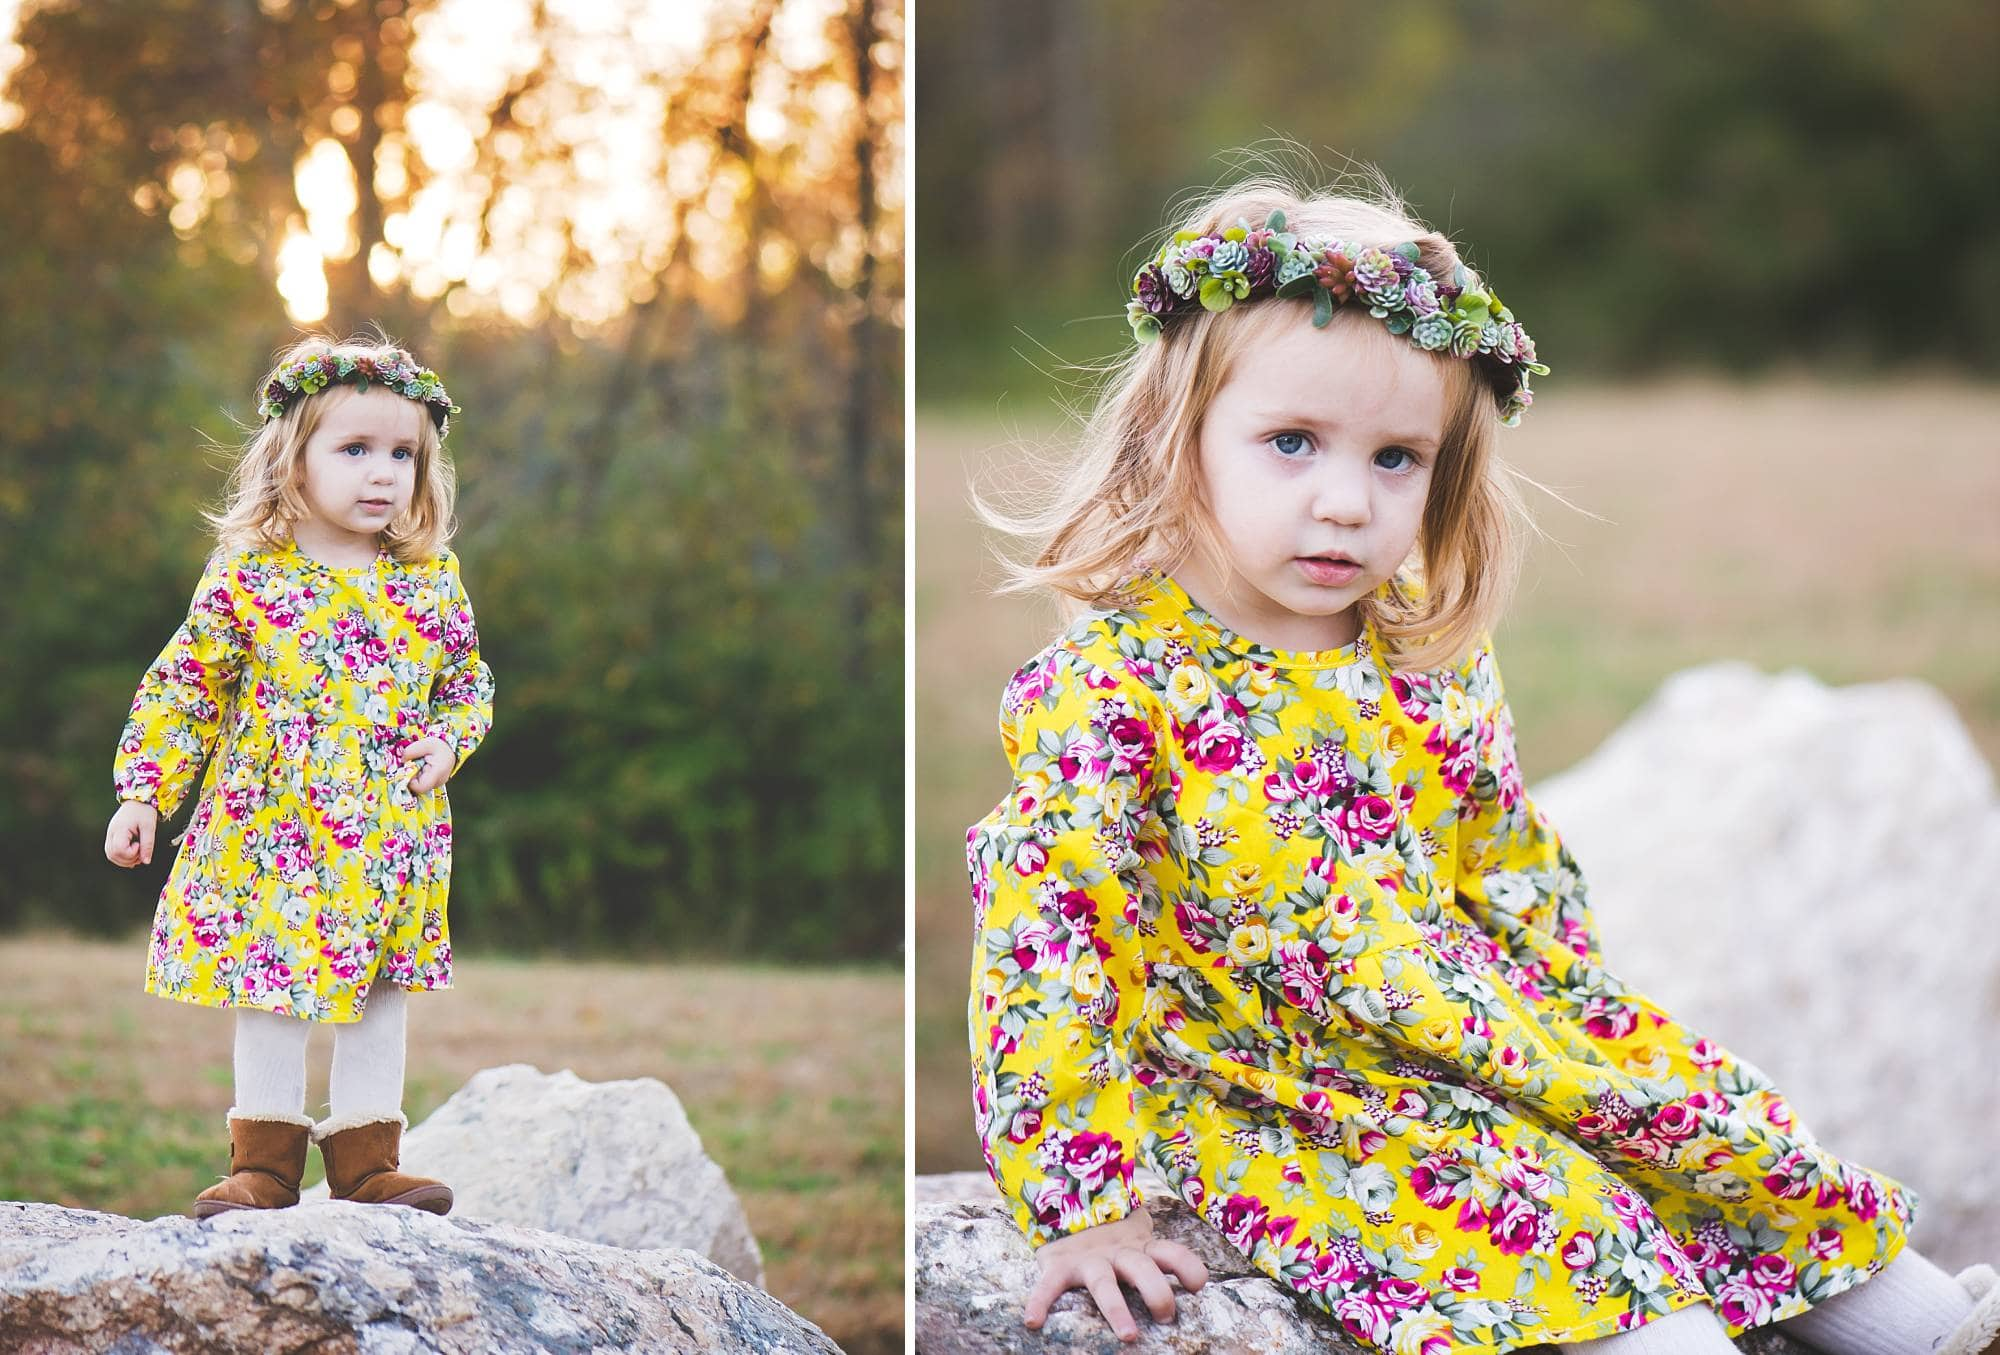 Toddler girl on a rock with a yellow dress and flower crown